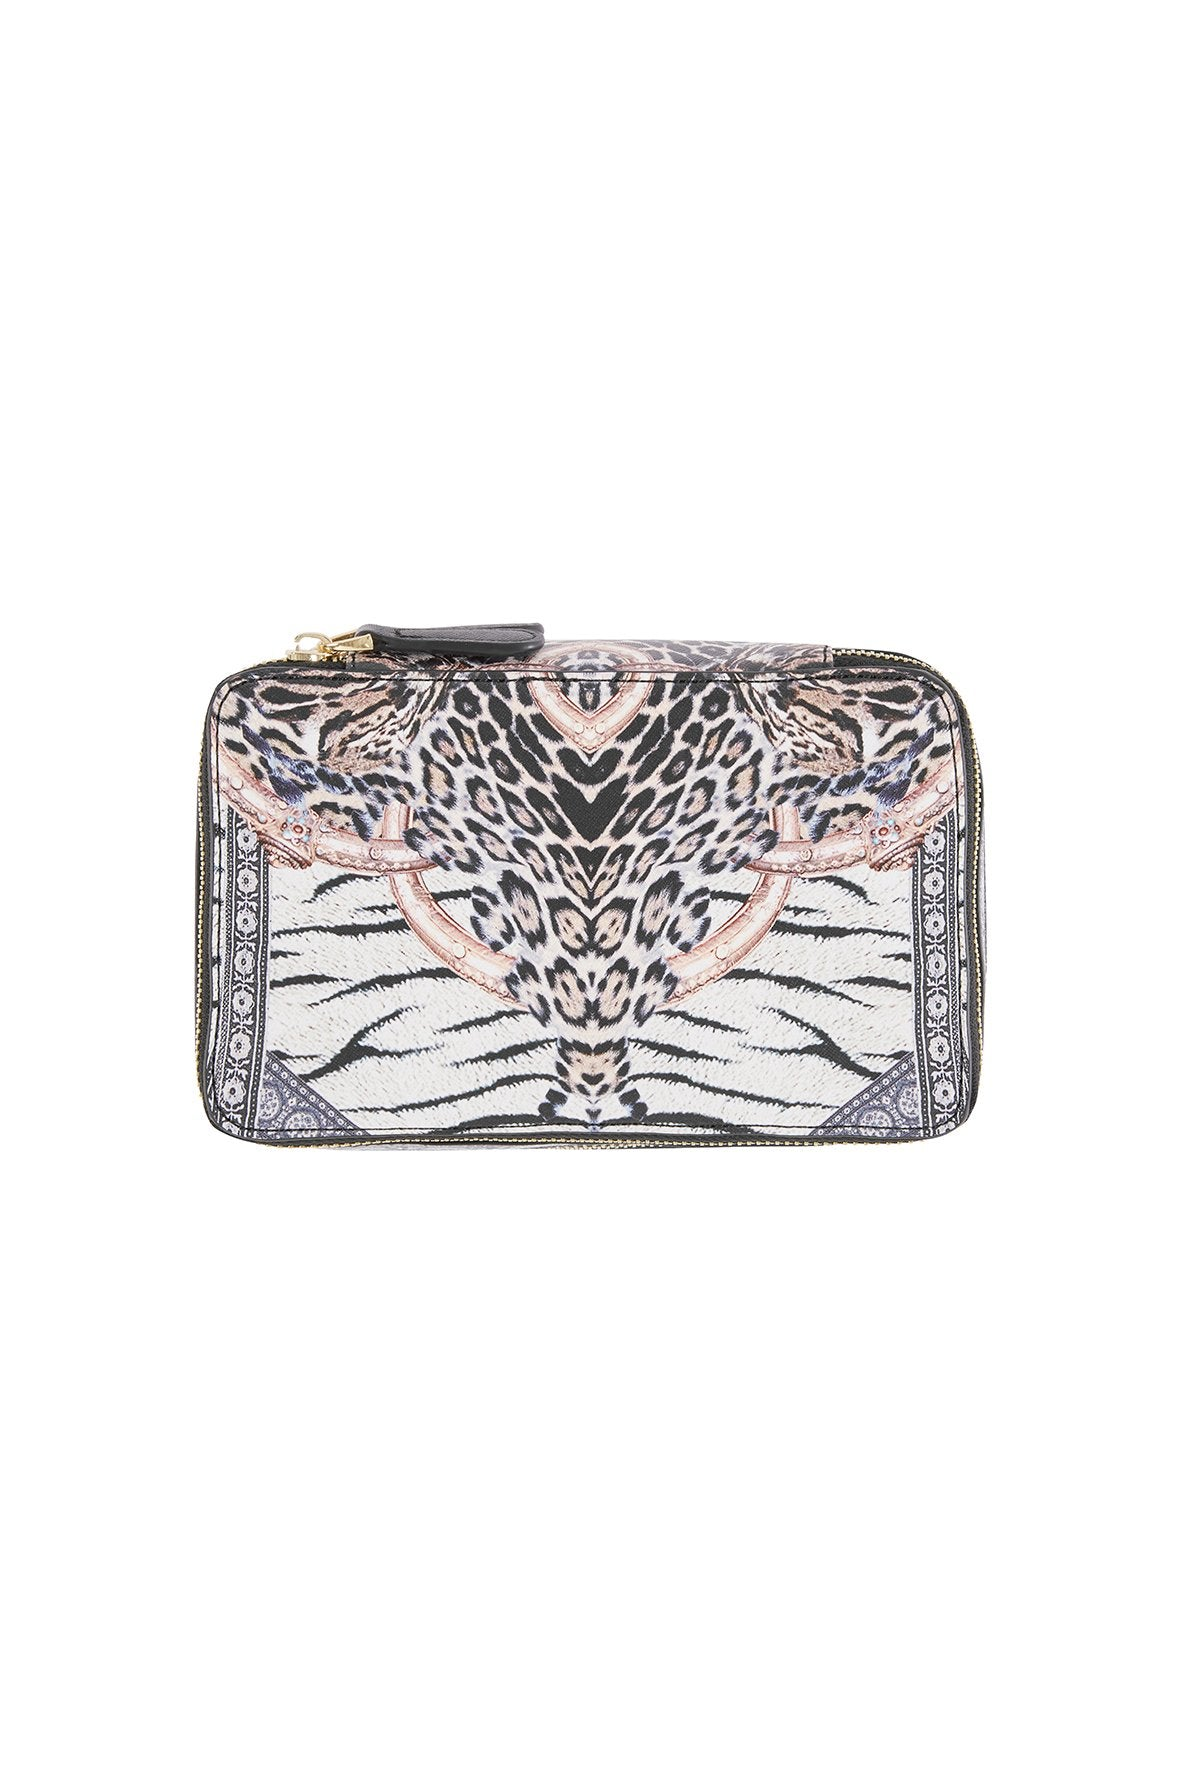 THE BODYGUARD SAFFIANO PRINTED COSMETIC CASE